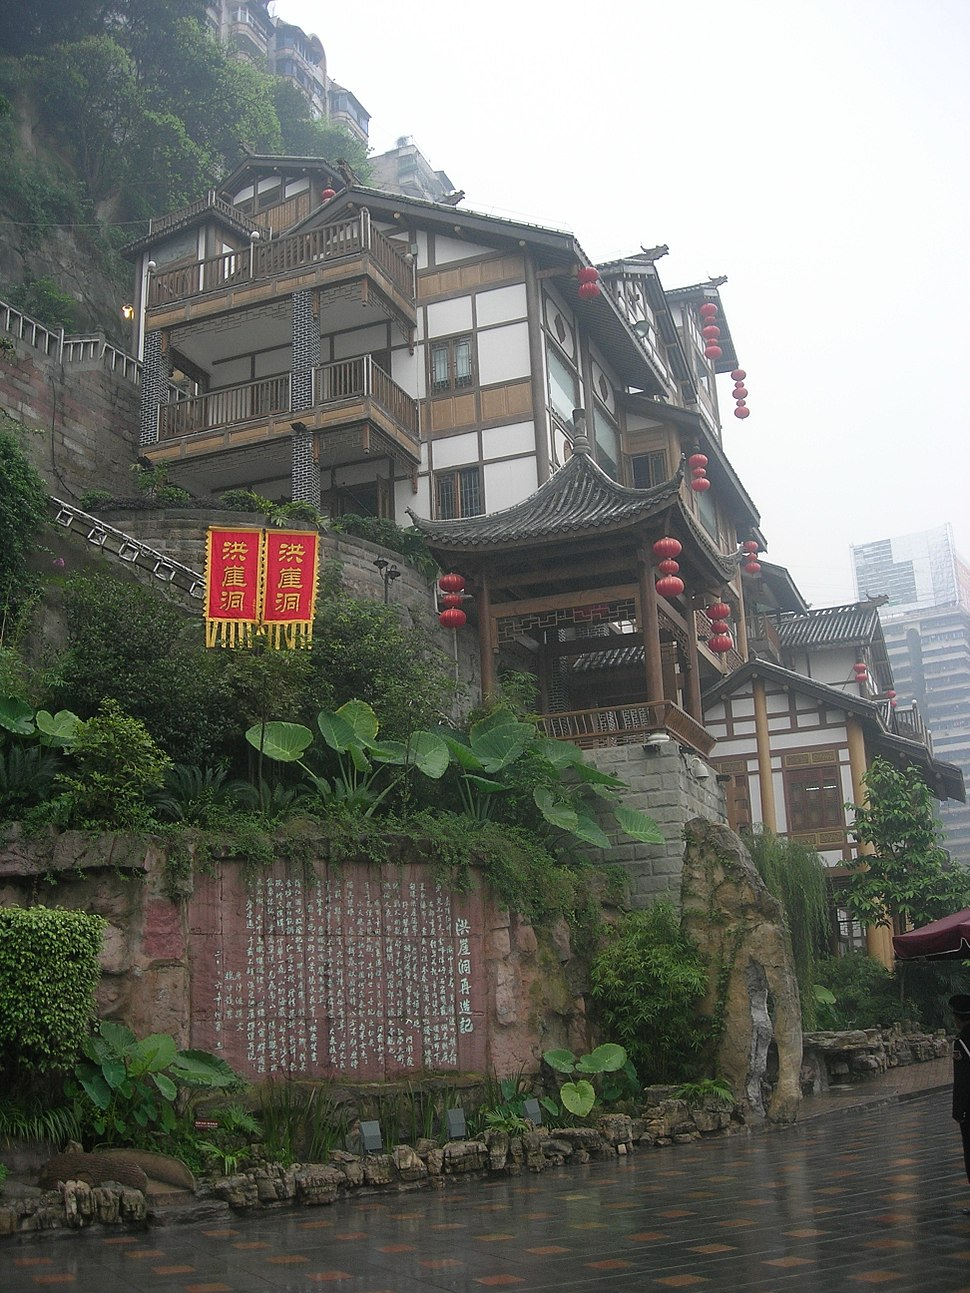 The Hongyadong stilted house in Chongqqing city